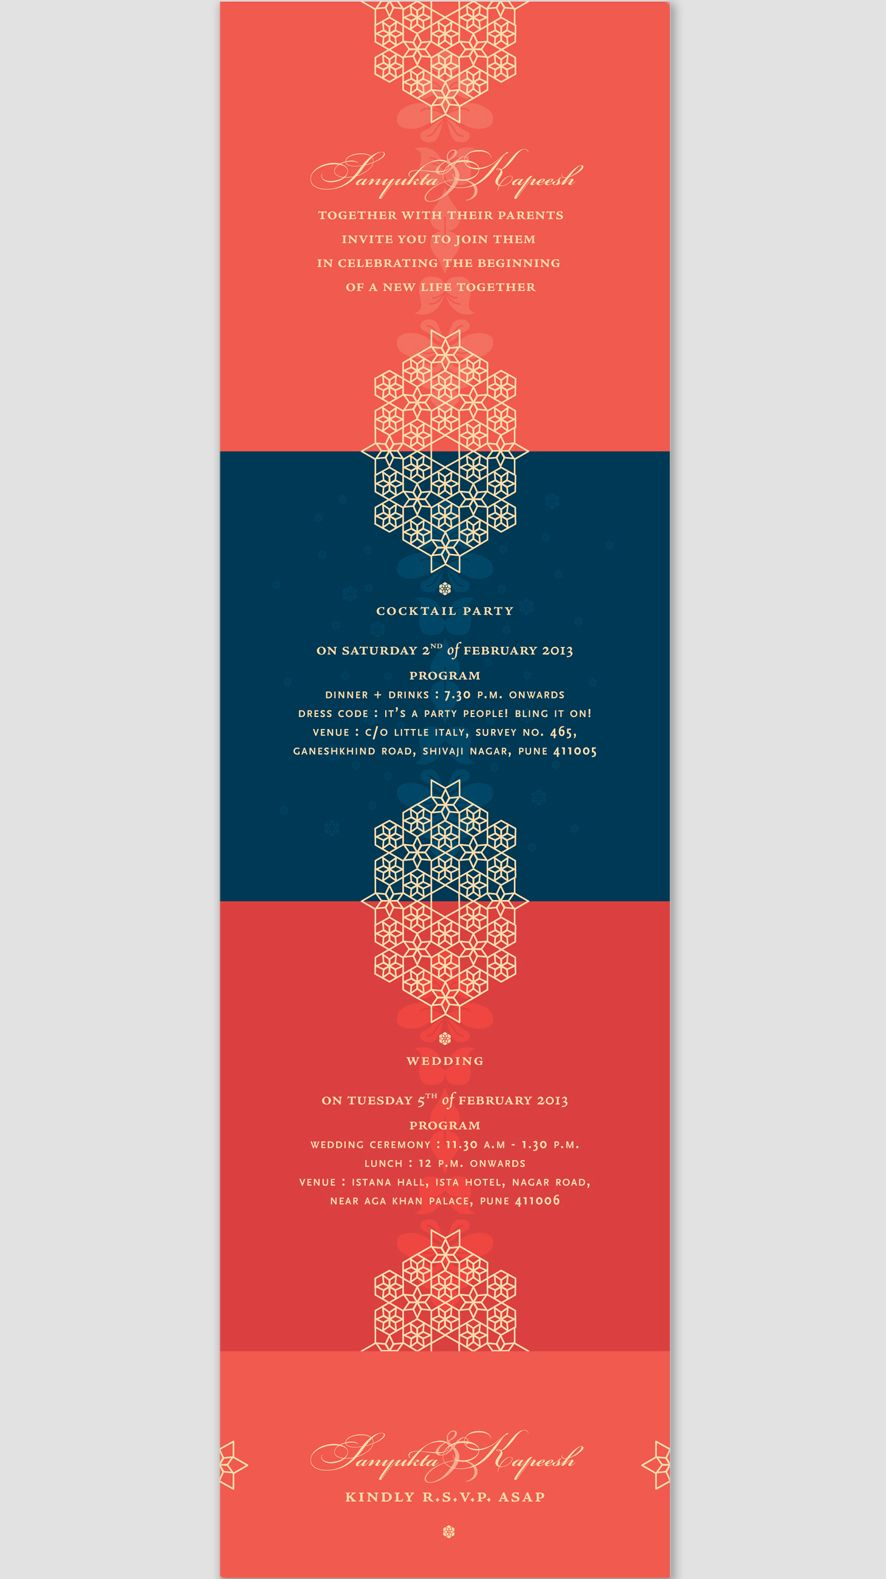 Invitation suite for my own wedding | Work and Play | Pinterest ...